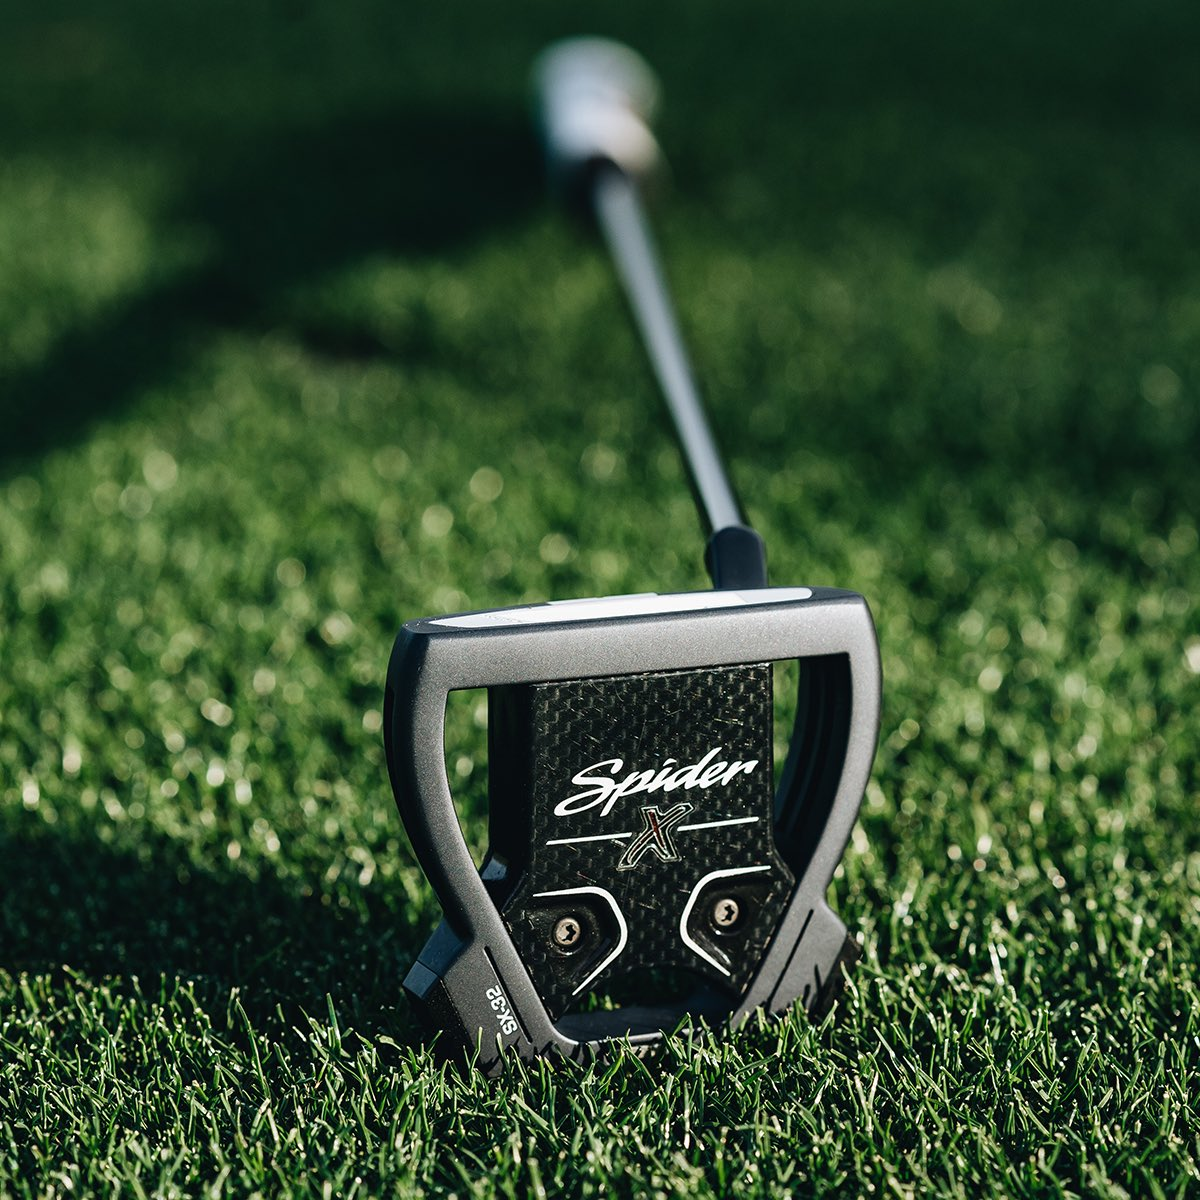 The X factor delivers on Sundays.   Congrats to the winner of the #coraleschampionship, who used #SpiderX to help seal his second career win! #PureRoll #No3Putts https://t.co/WqWW8qKq6y